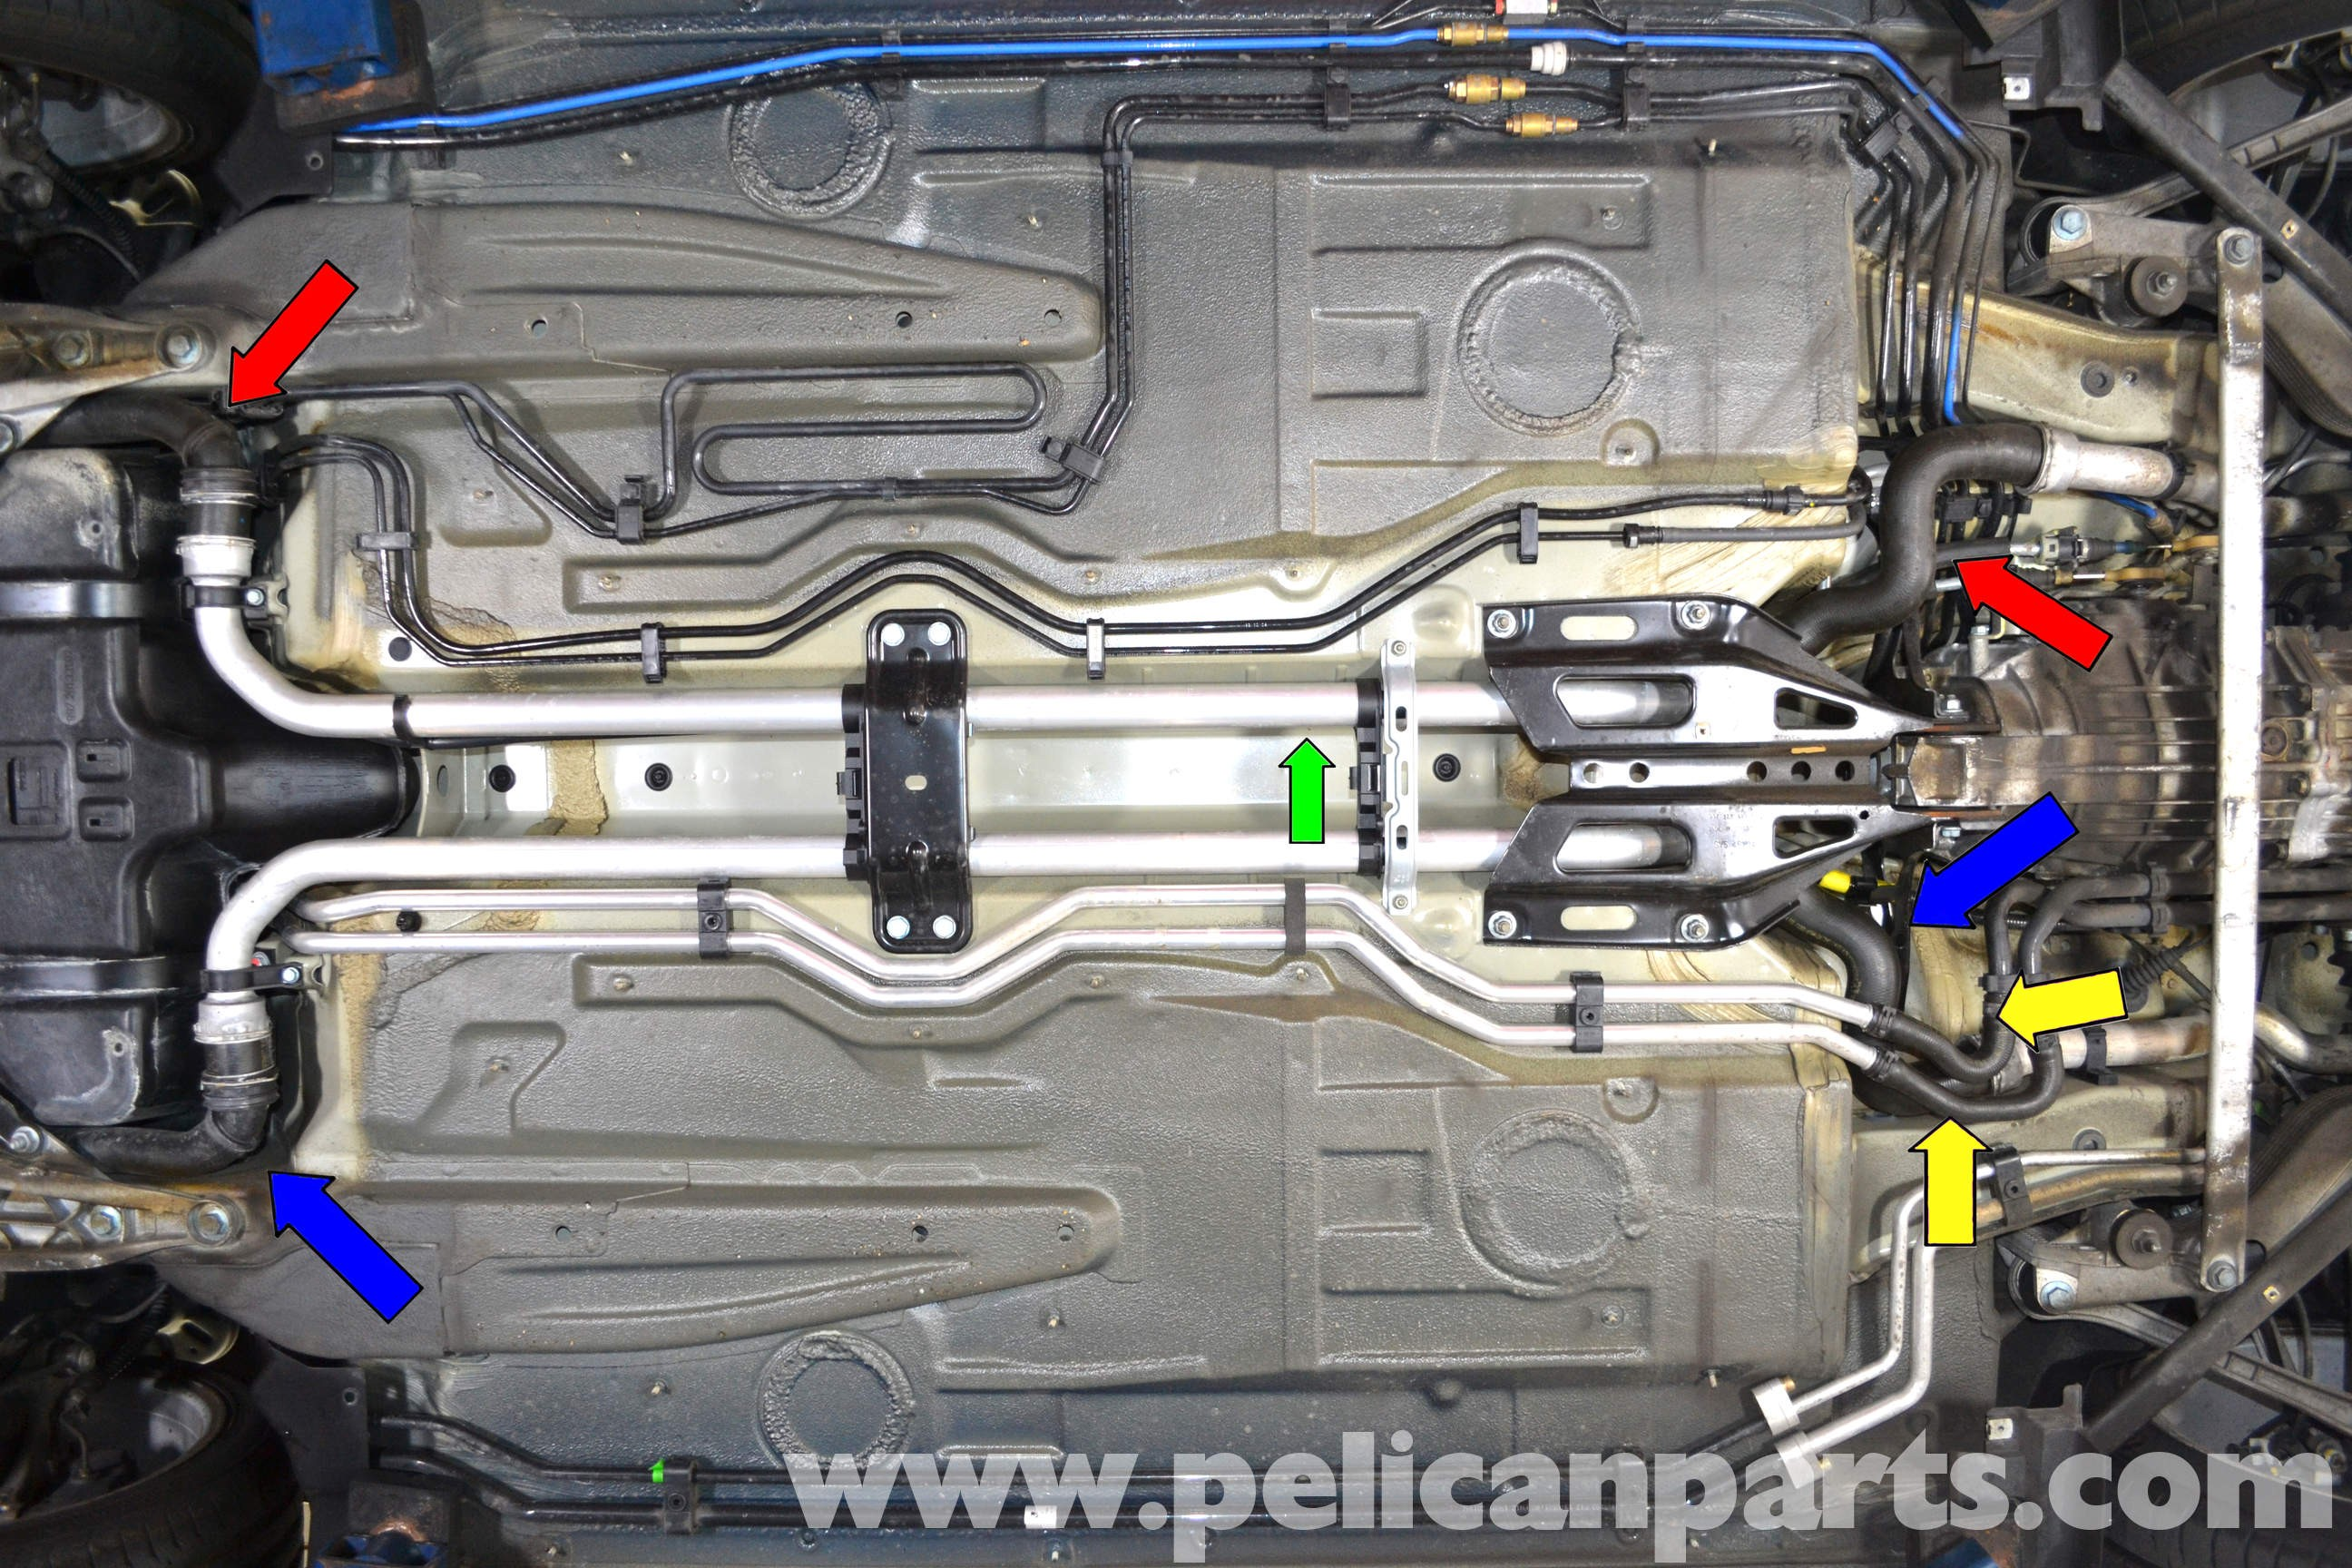 Porsche 911 Engine Diagram Porsche 911 Carrera Coolant Hose Replacement 996 1998 2005 997 Of Porsche 911 Engine Diagram